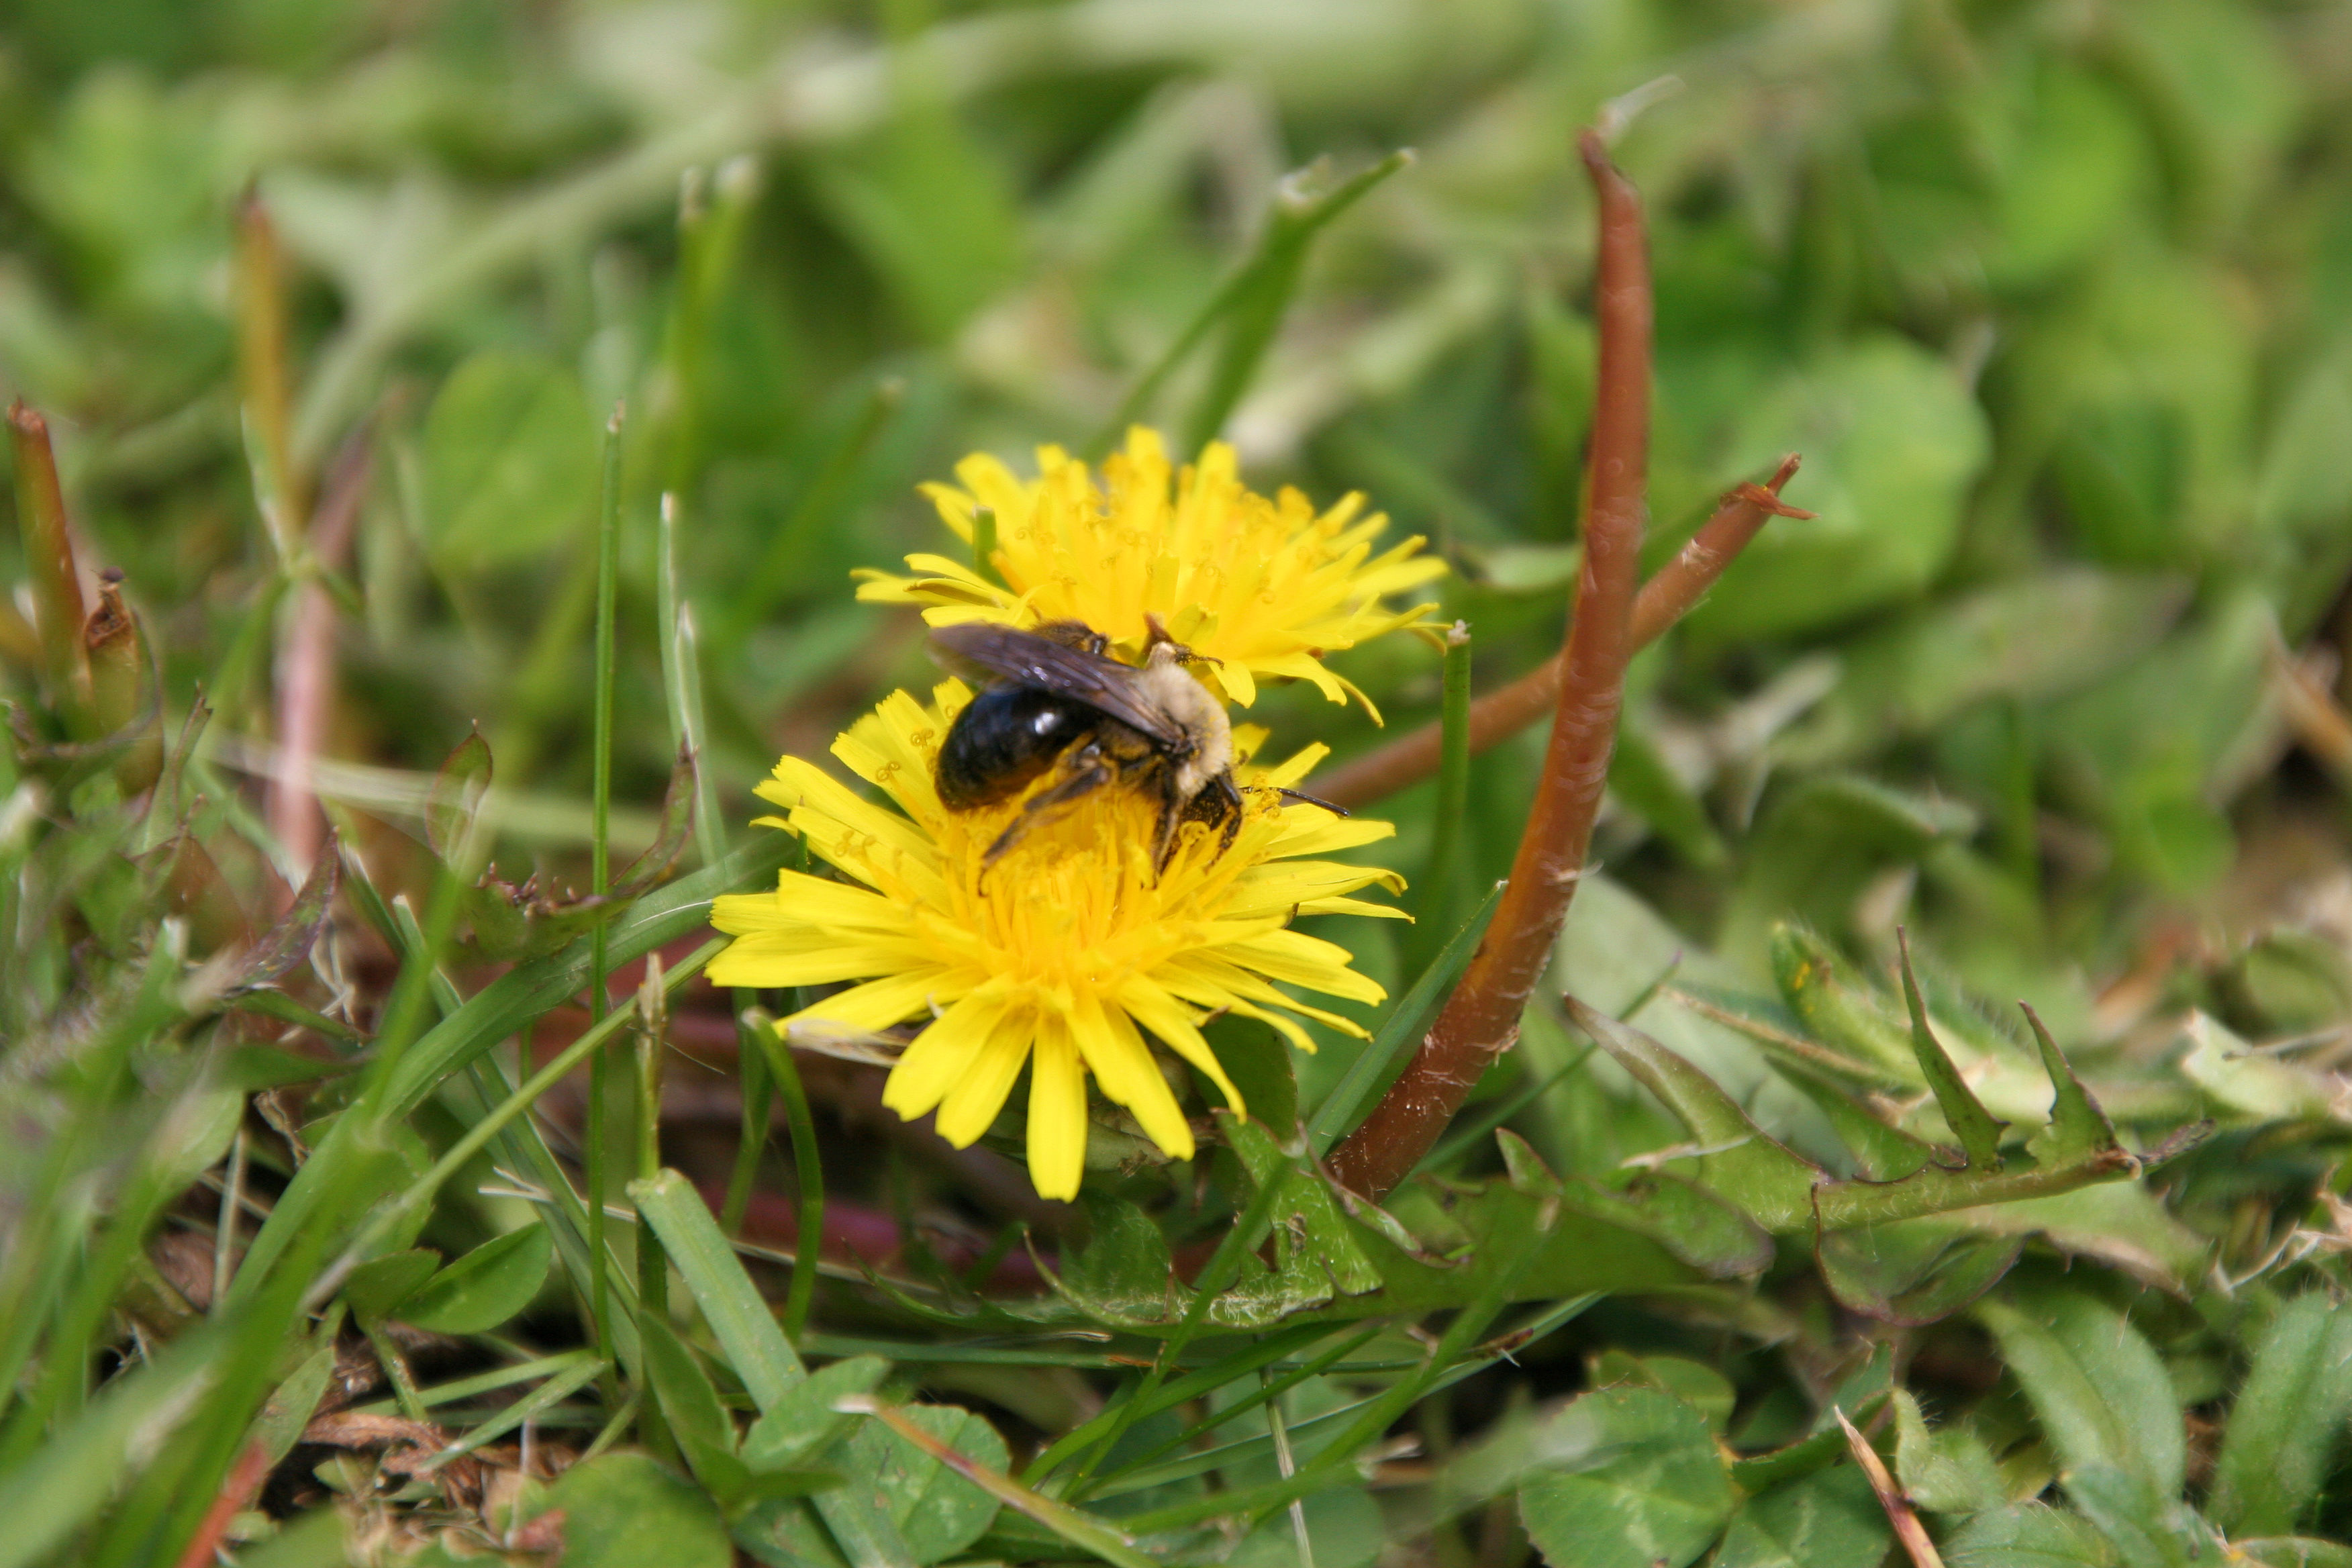 Dandelions and Bees: Why a Flowering Lawn is Healthier For Everyone